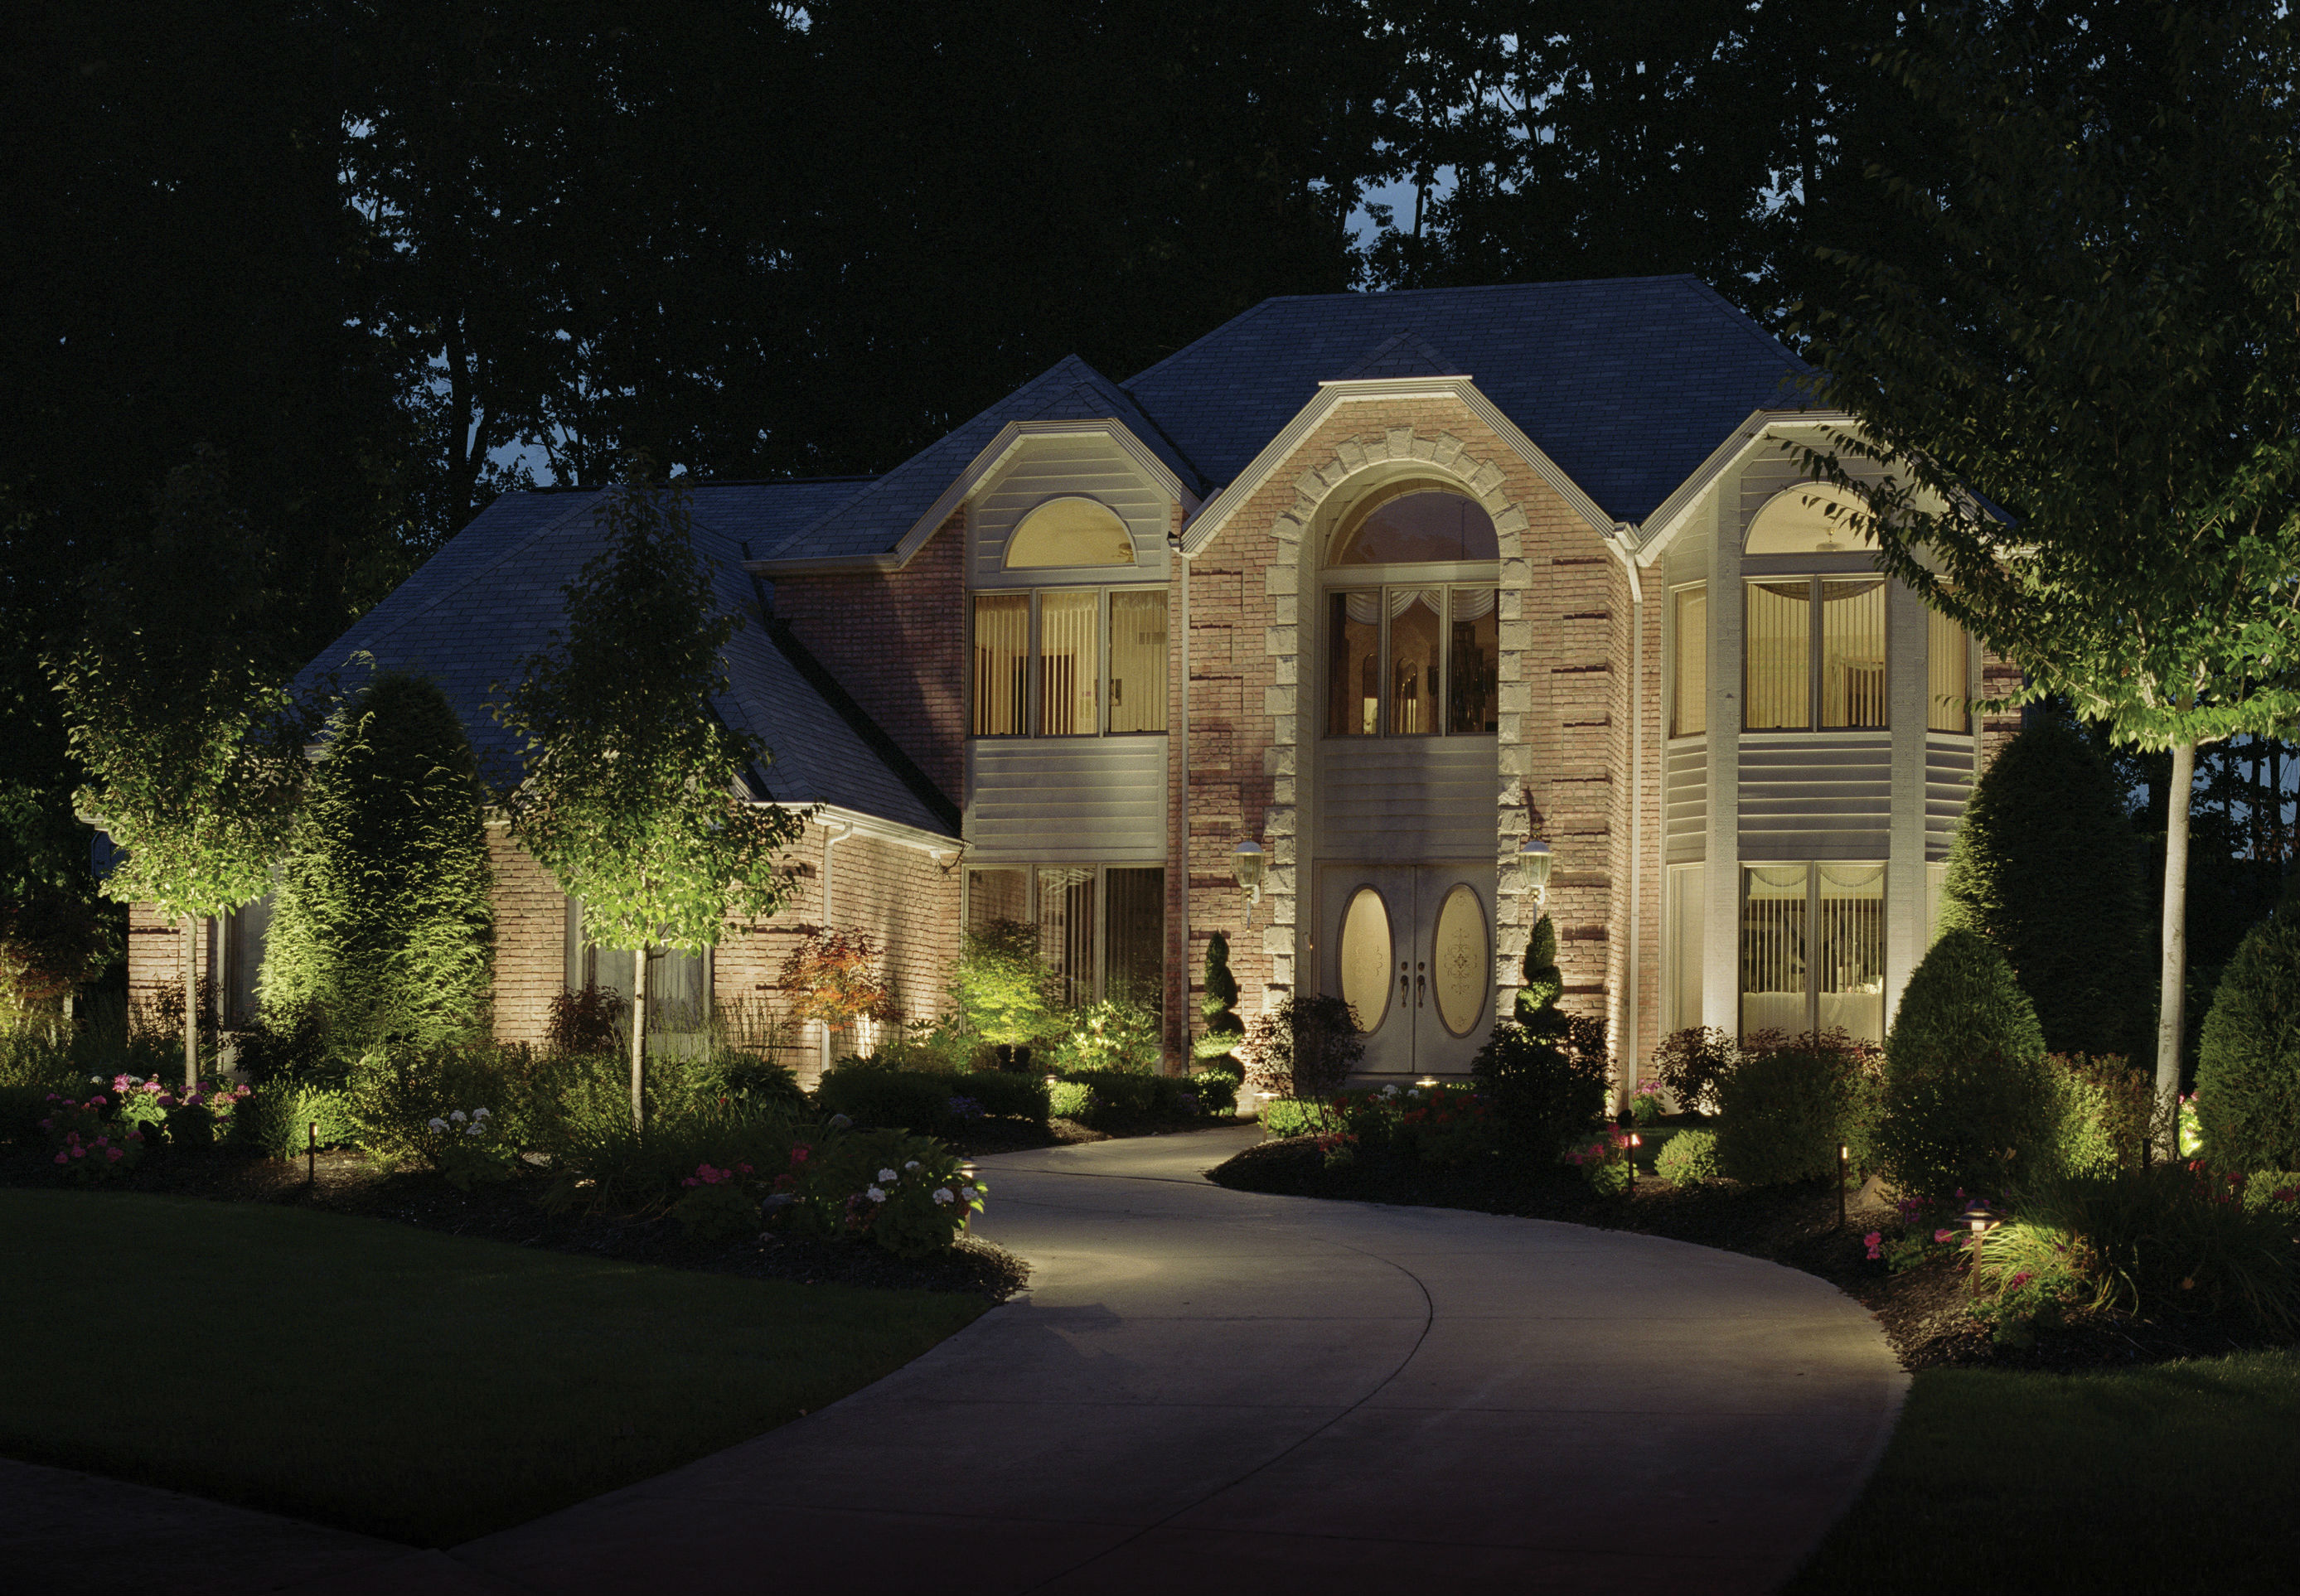 Outdoor lighting - Beauty Safety And Security What Wilmington De Landscape Lighting Needs